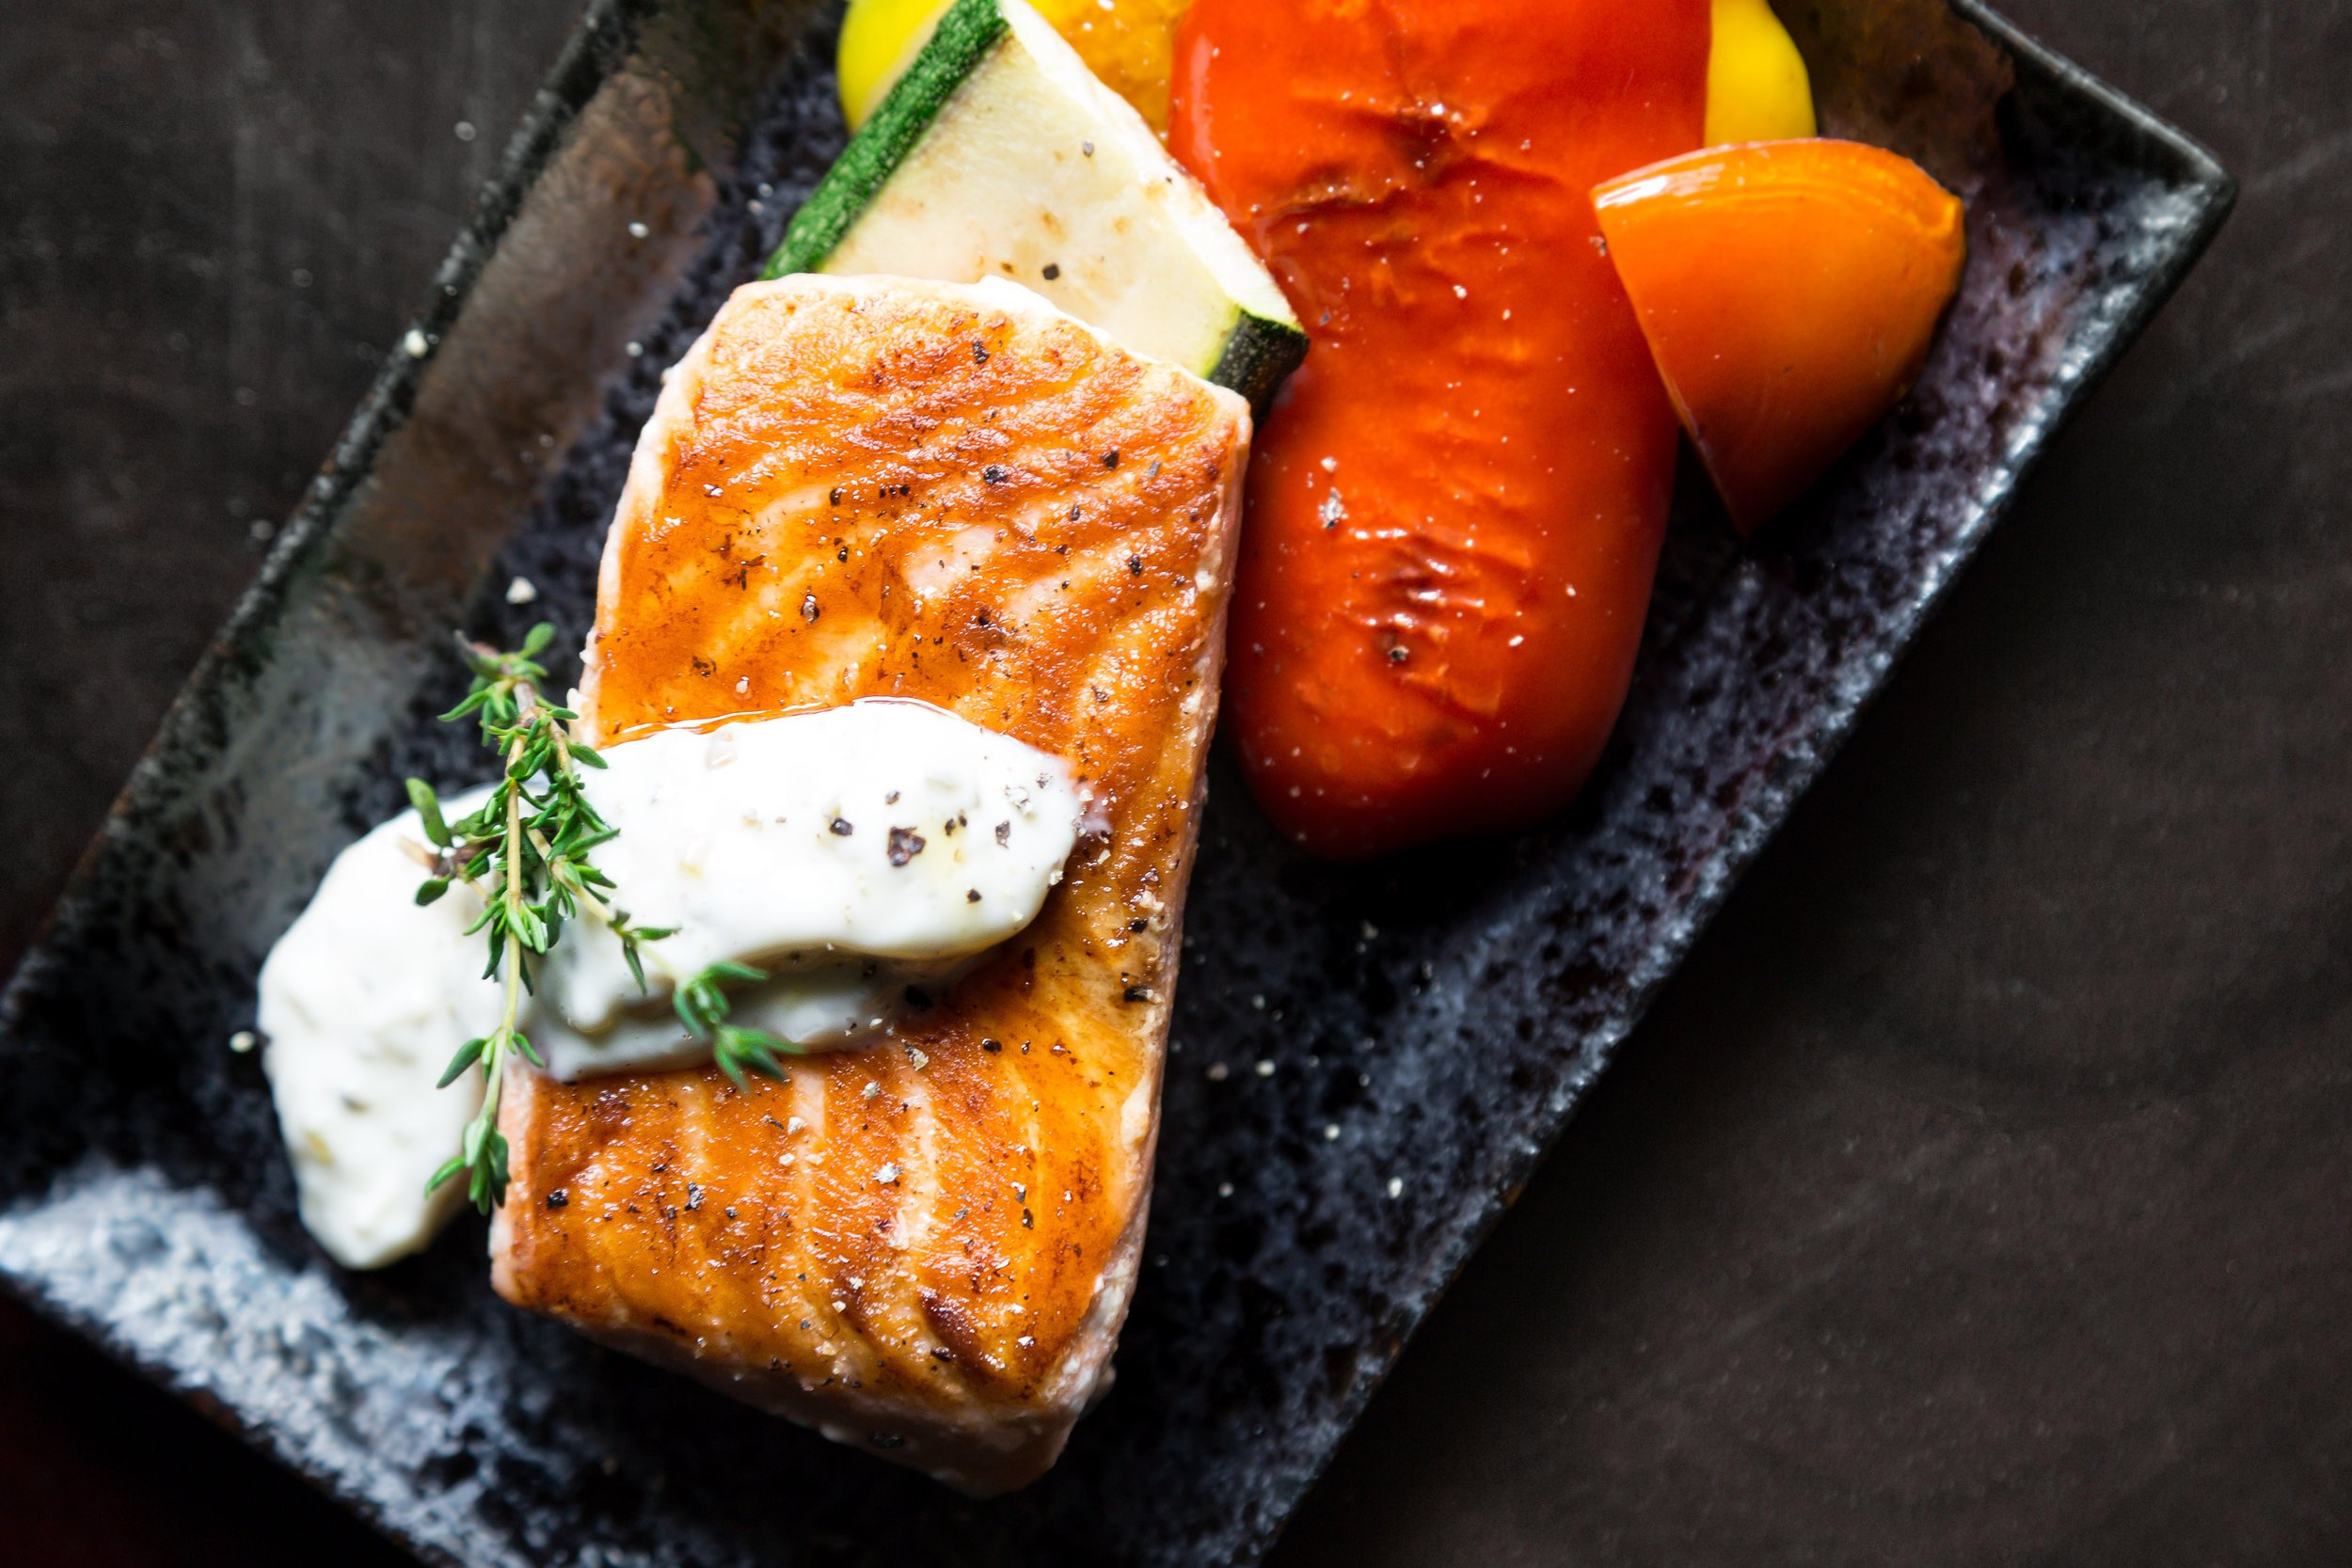 Wild-caught salmon is an excellent source of Omega-3 fatty acids